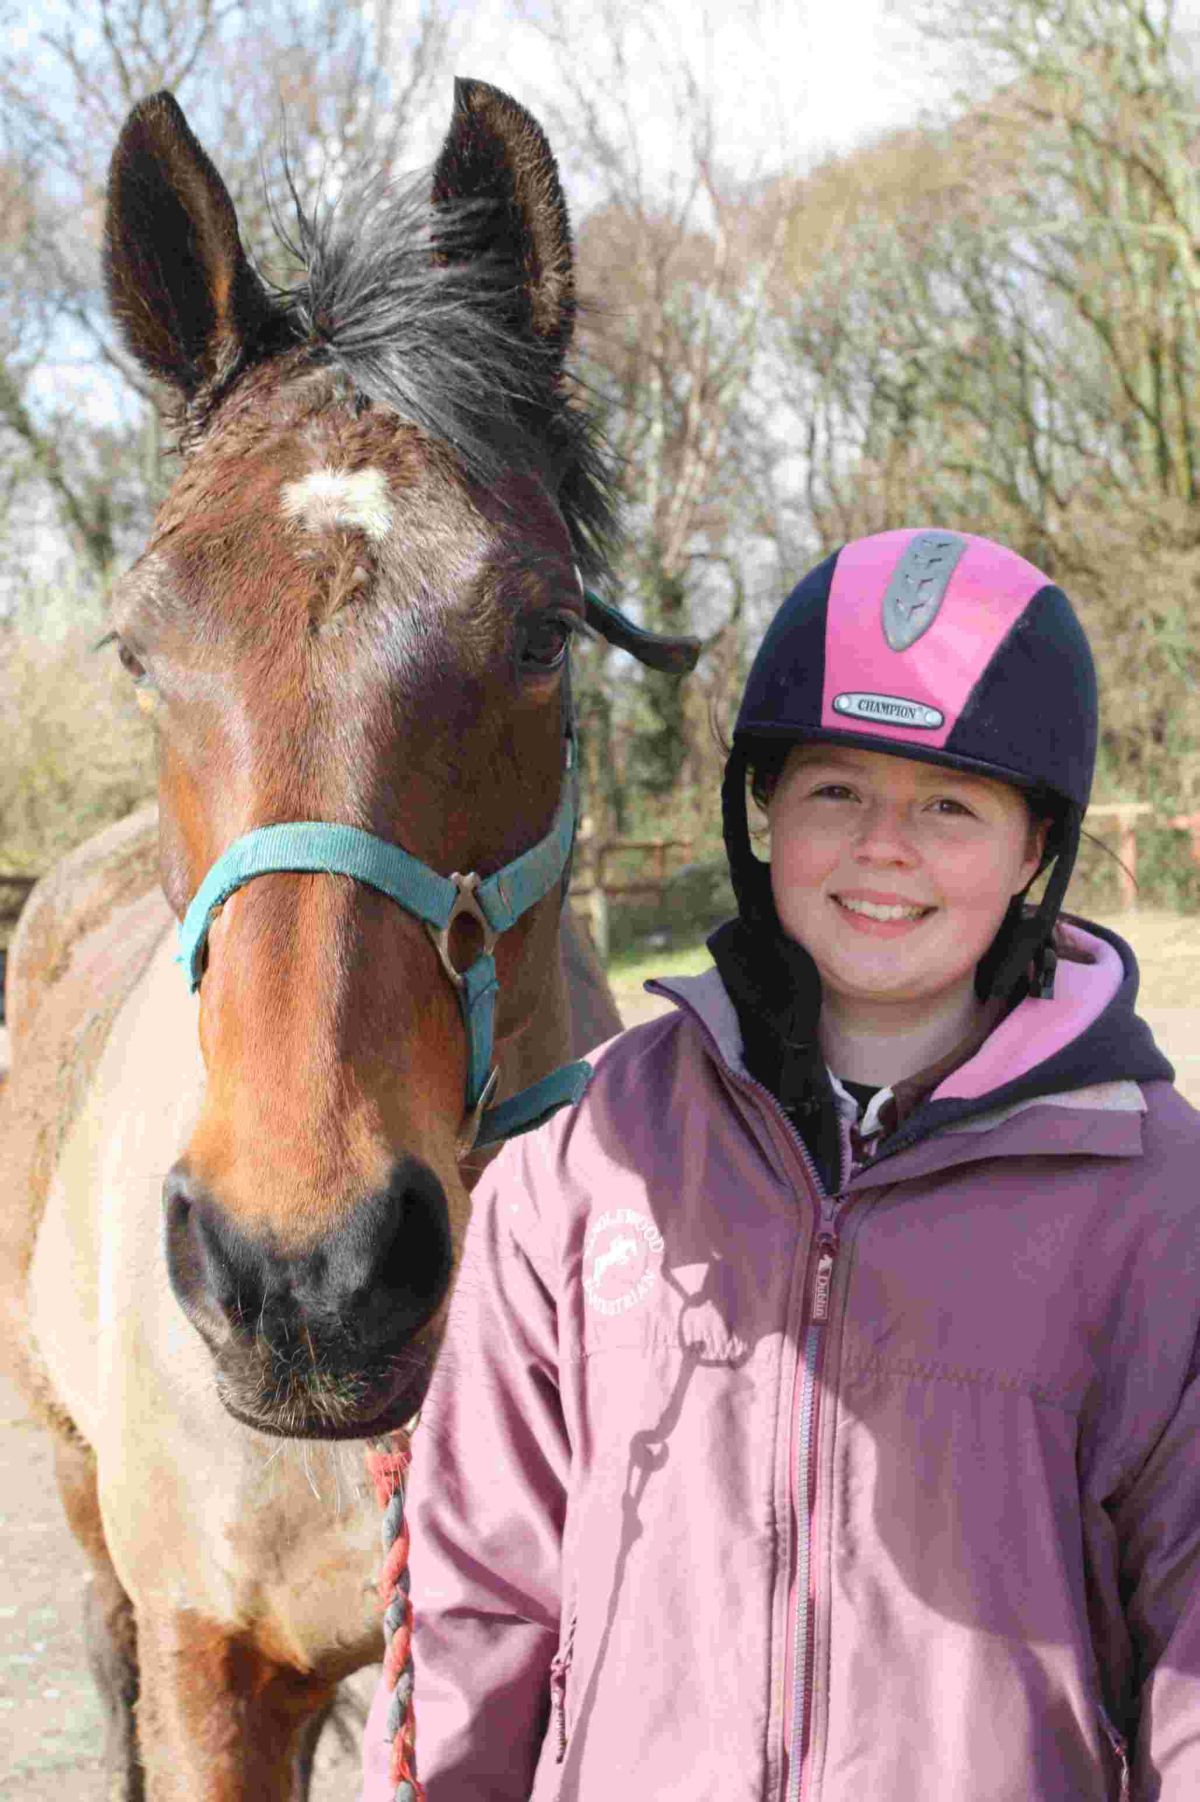 Claire Brewer is working towards a British Horse Society qualification